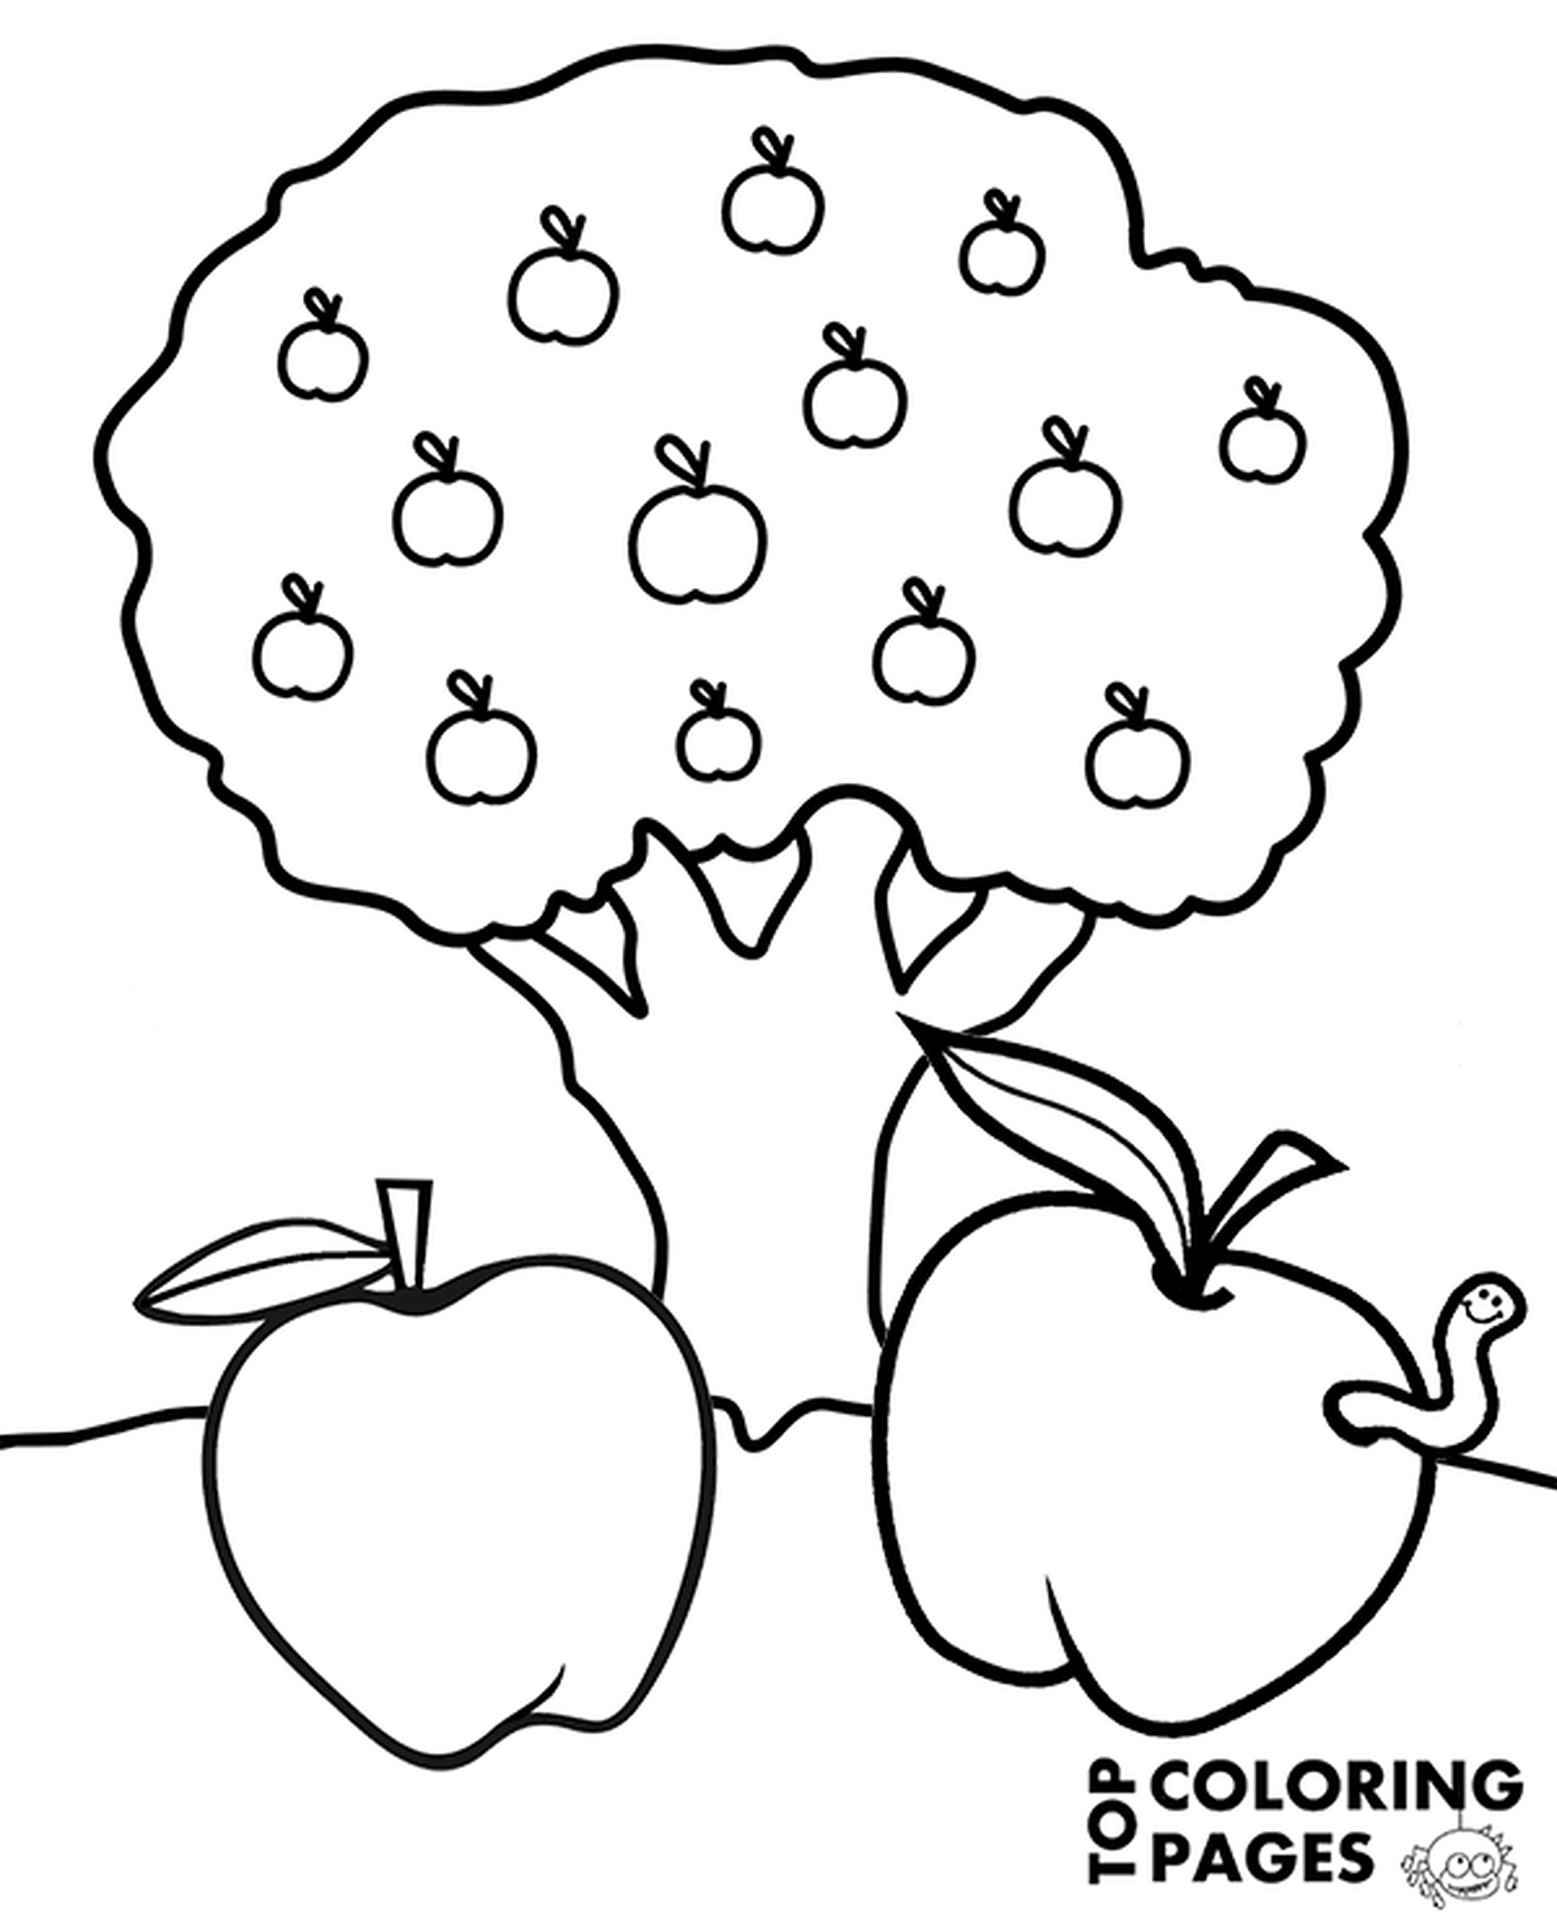 Apple Tree With Apples Coloring Page